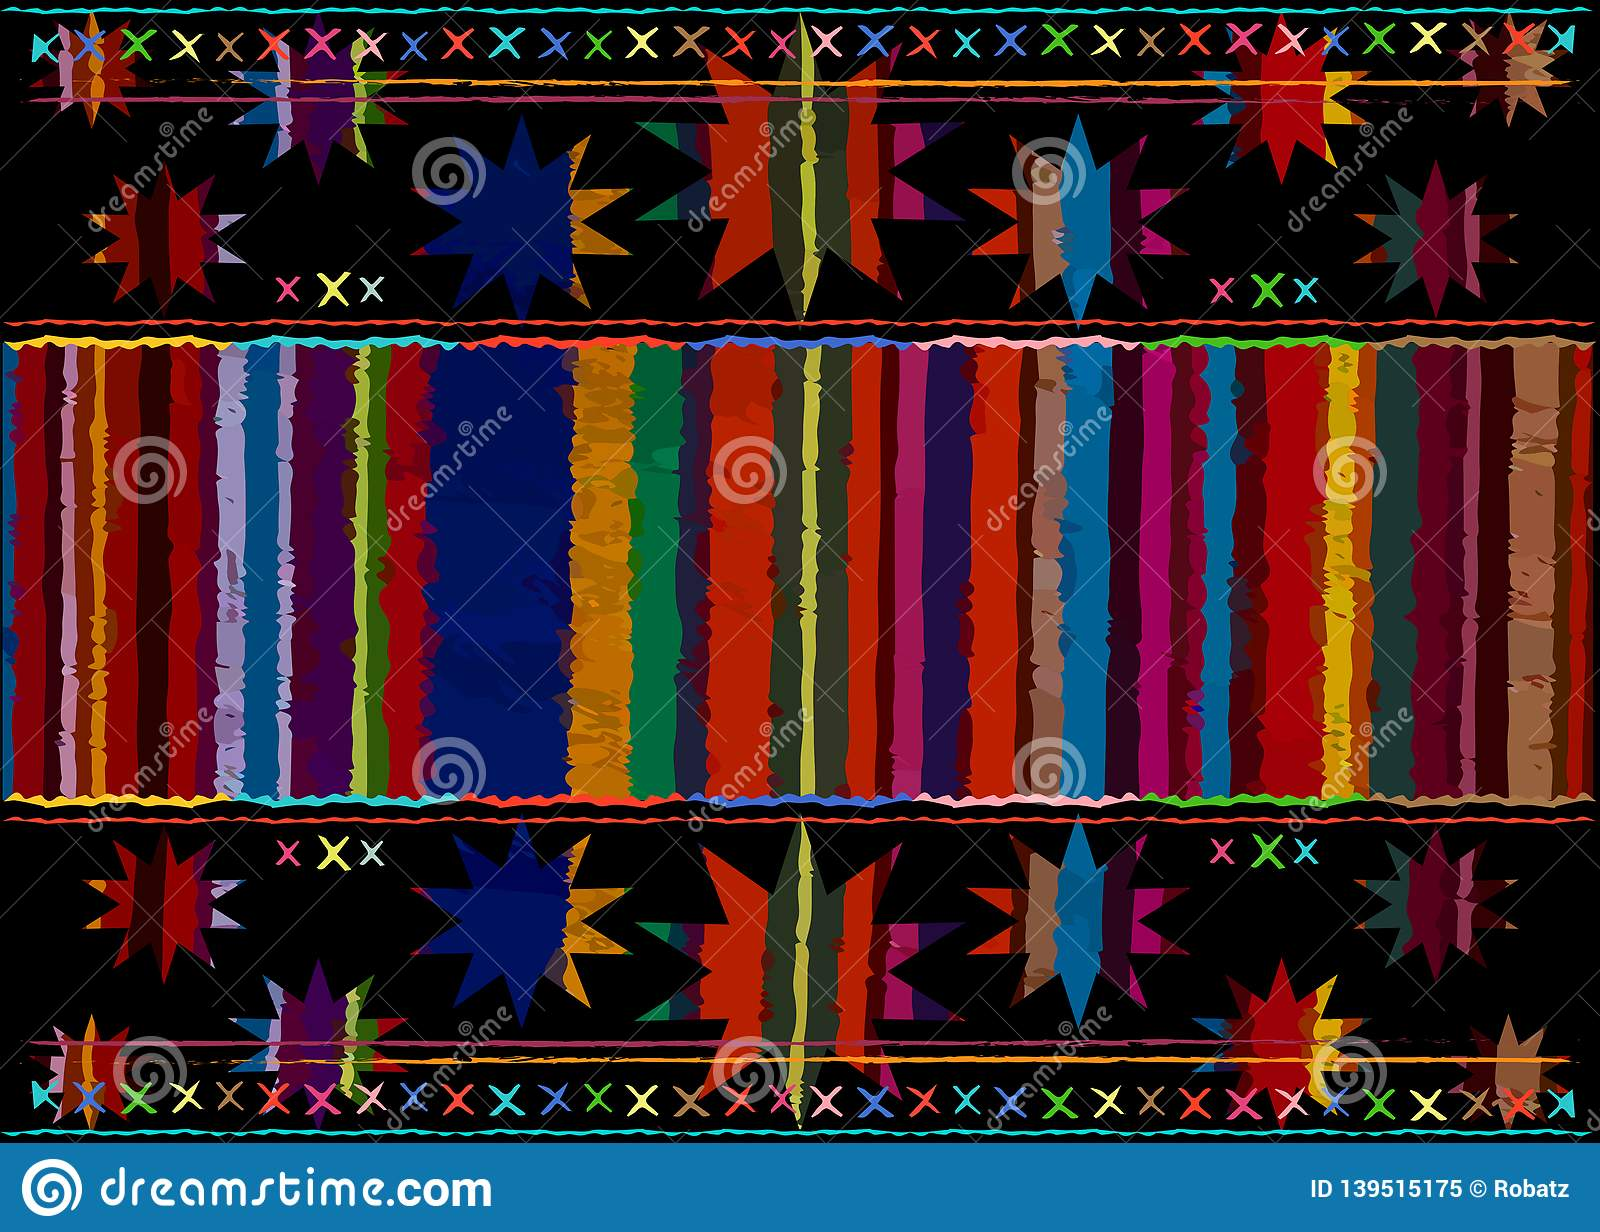 Mexican ethnic embroidery Tribal art ethnic pattern. Colorful Mexican Blanket Stripes Folk abstract geometric repeating background